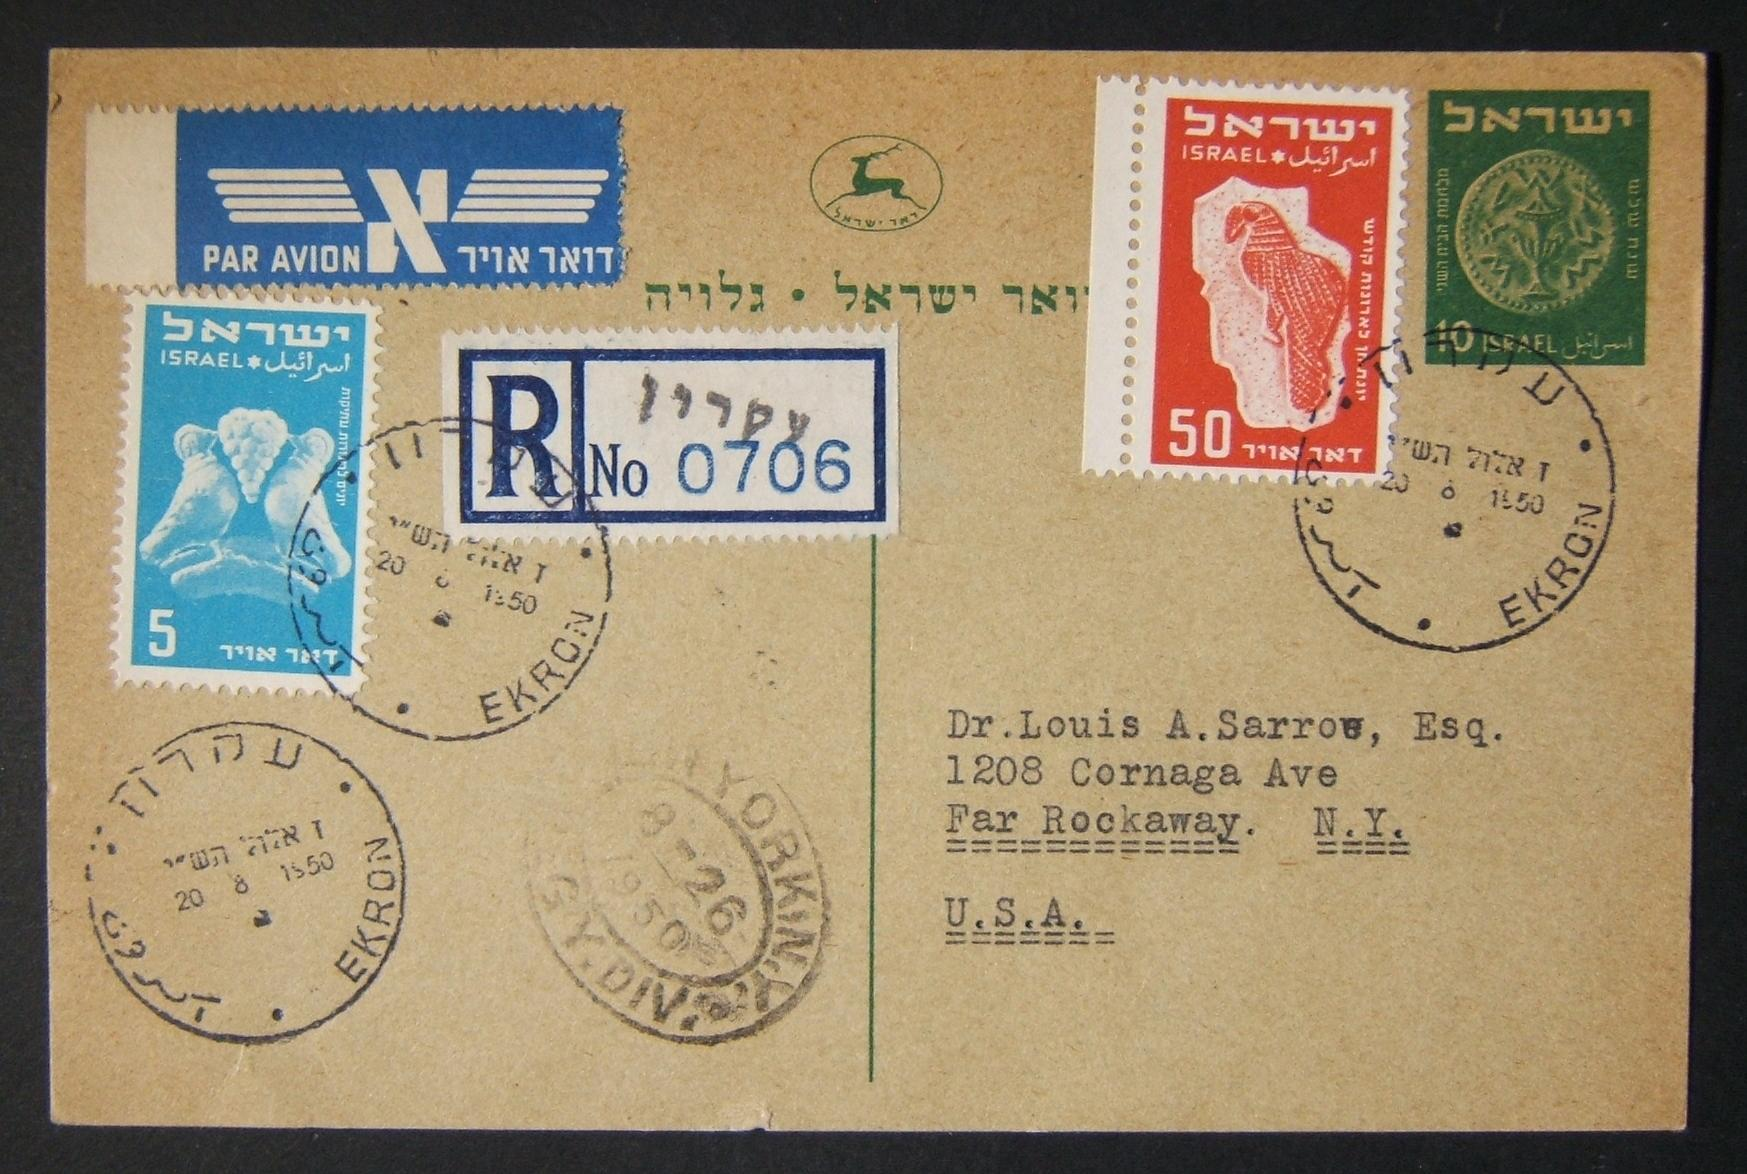 1950 1st day use of postal stationary postcard to US with 1st Airmail/3rd Coinage stamps